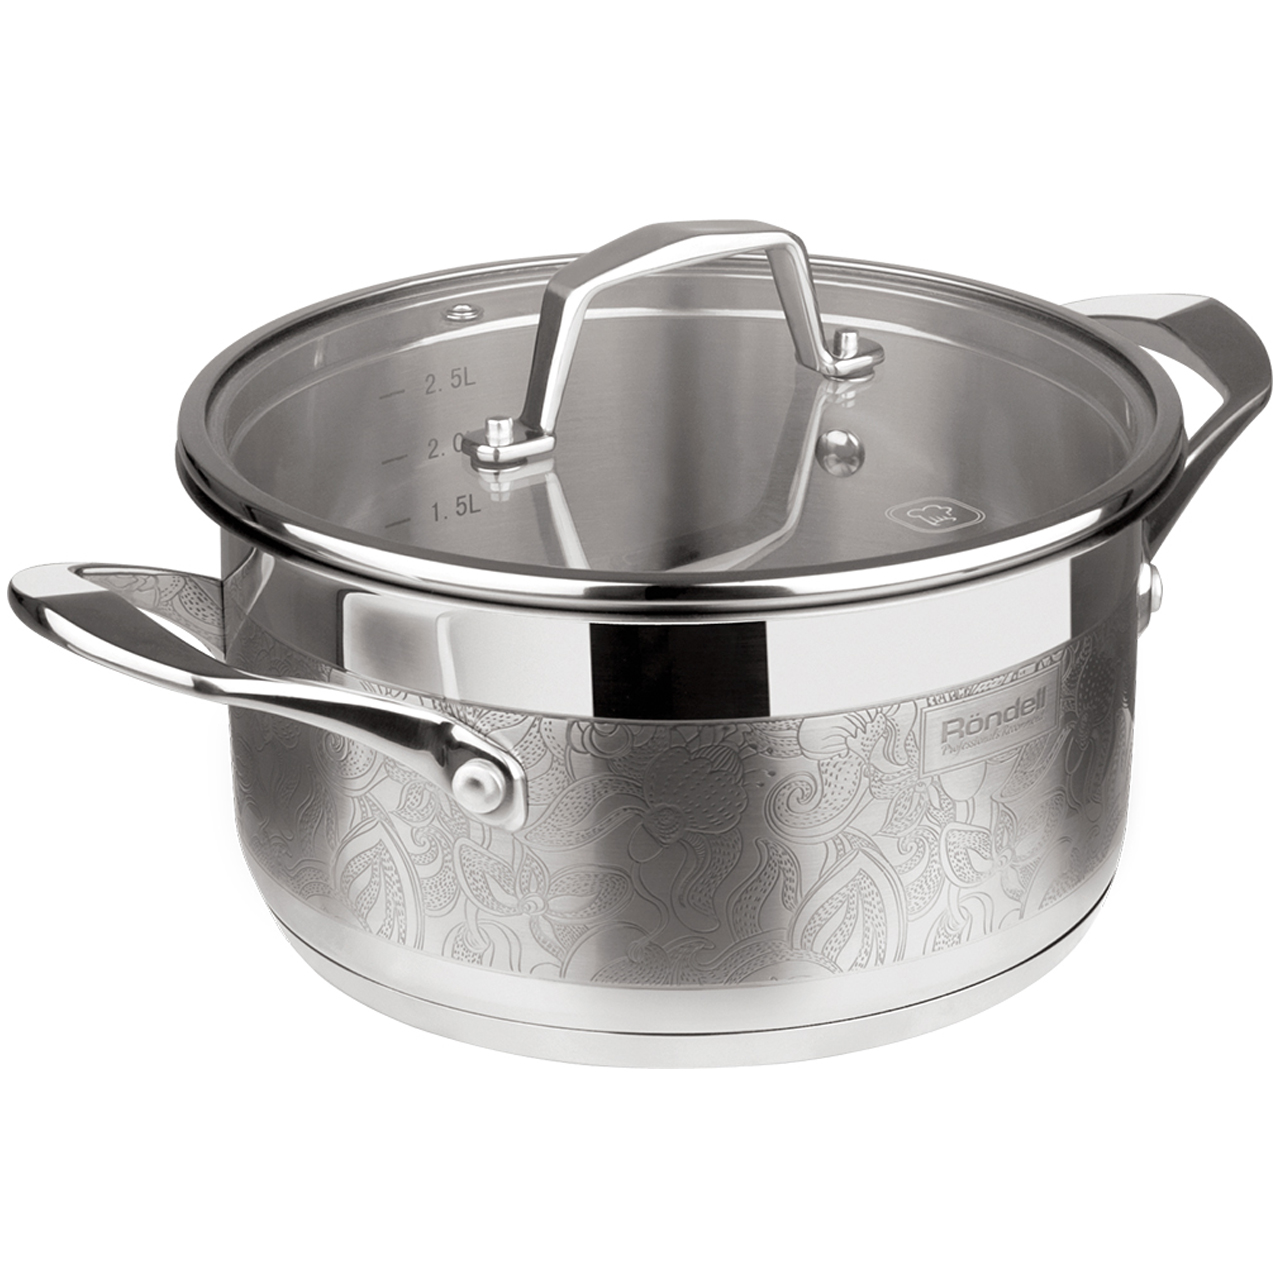 Casserole with lid Rondell Fancy 20 cm (2,5 L) RDS-397 недорого